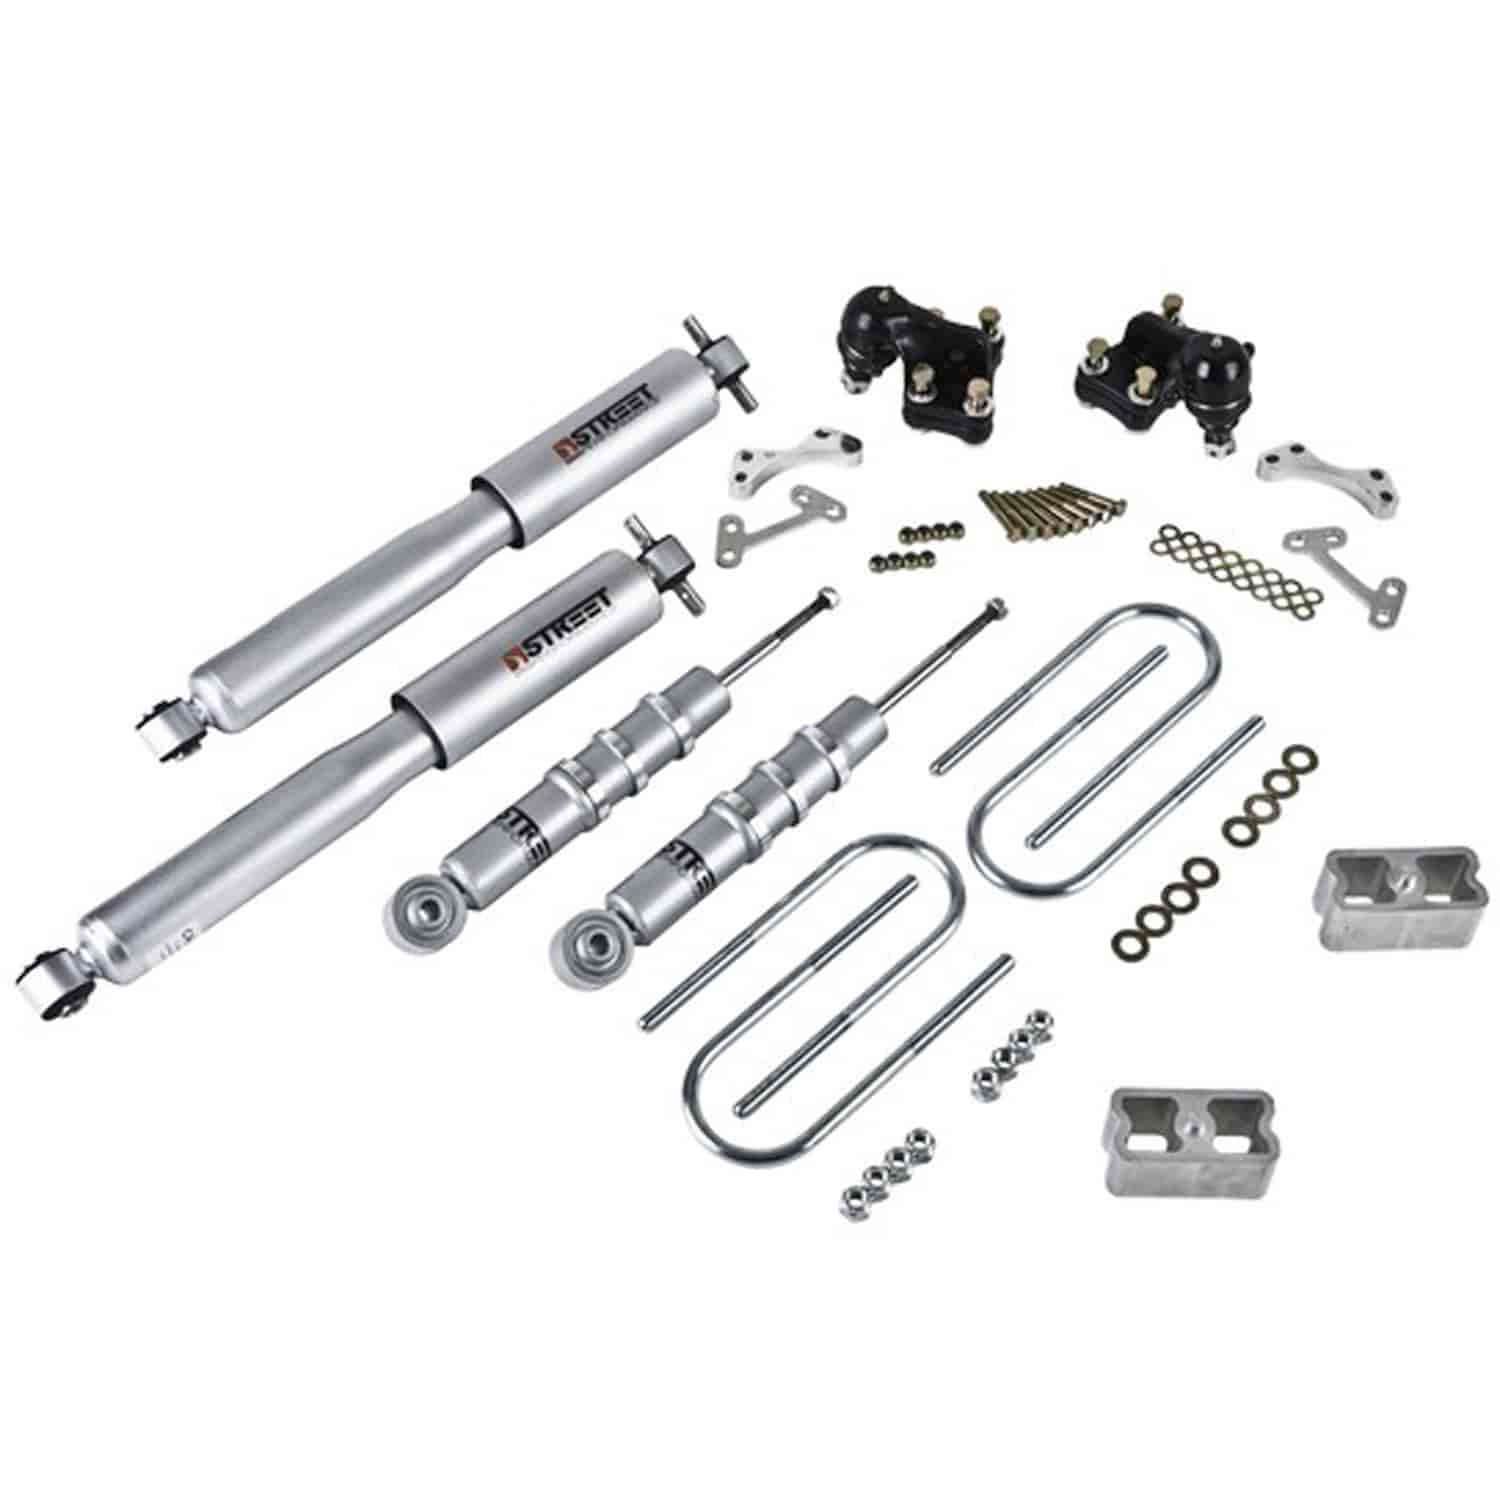 Belltech 611sp Complete Lowering Kit For Chevy